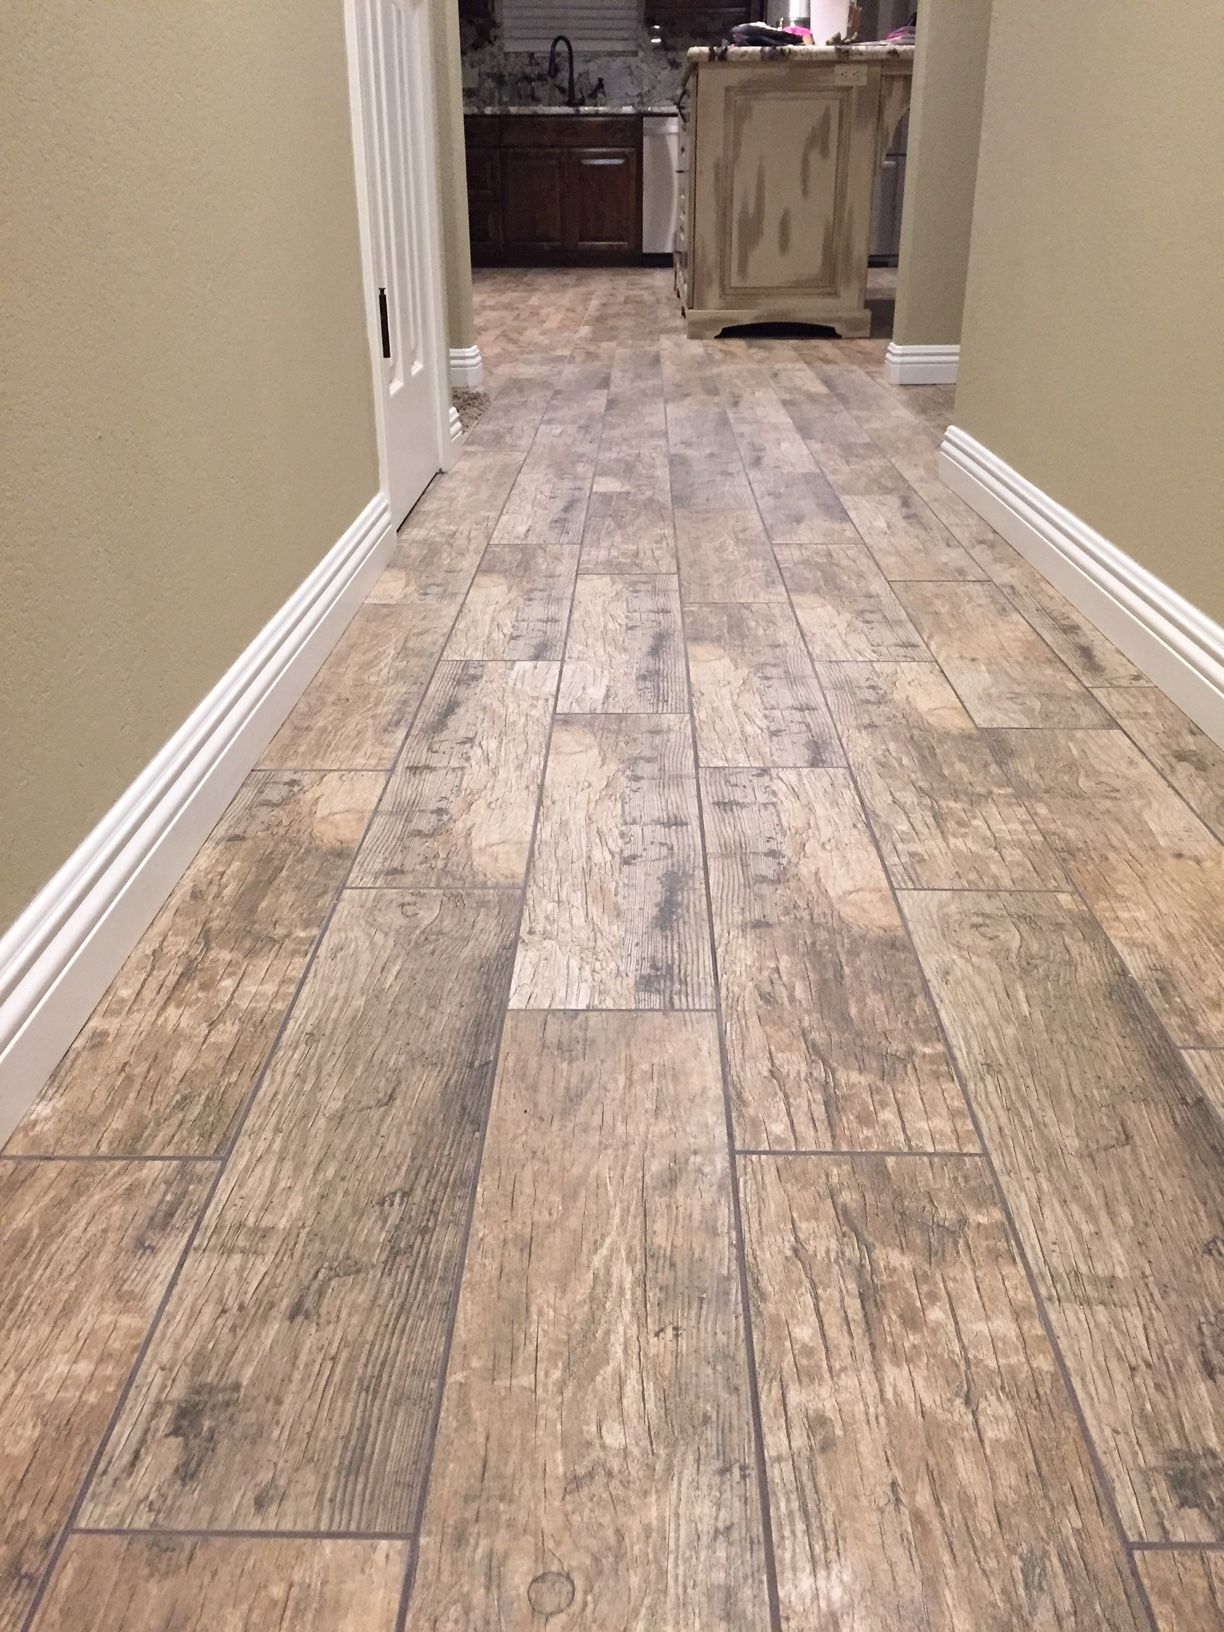 Cabot Porcelain Tile - Redwood Series | Wood tile floors ...